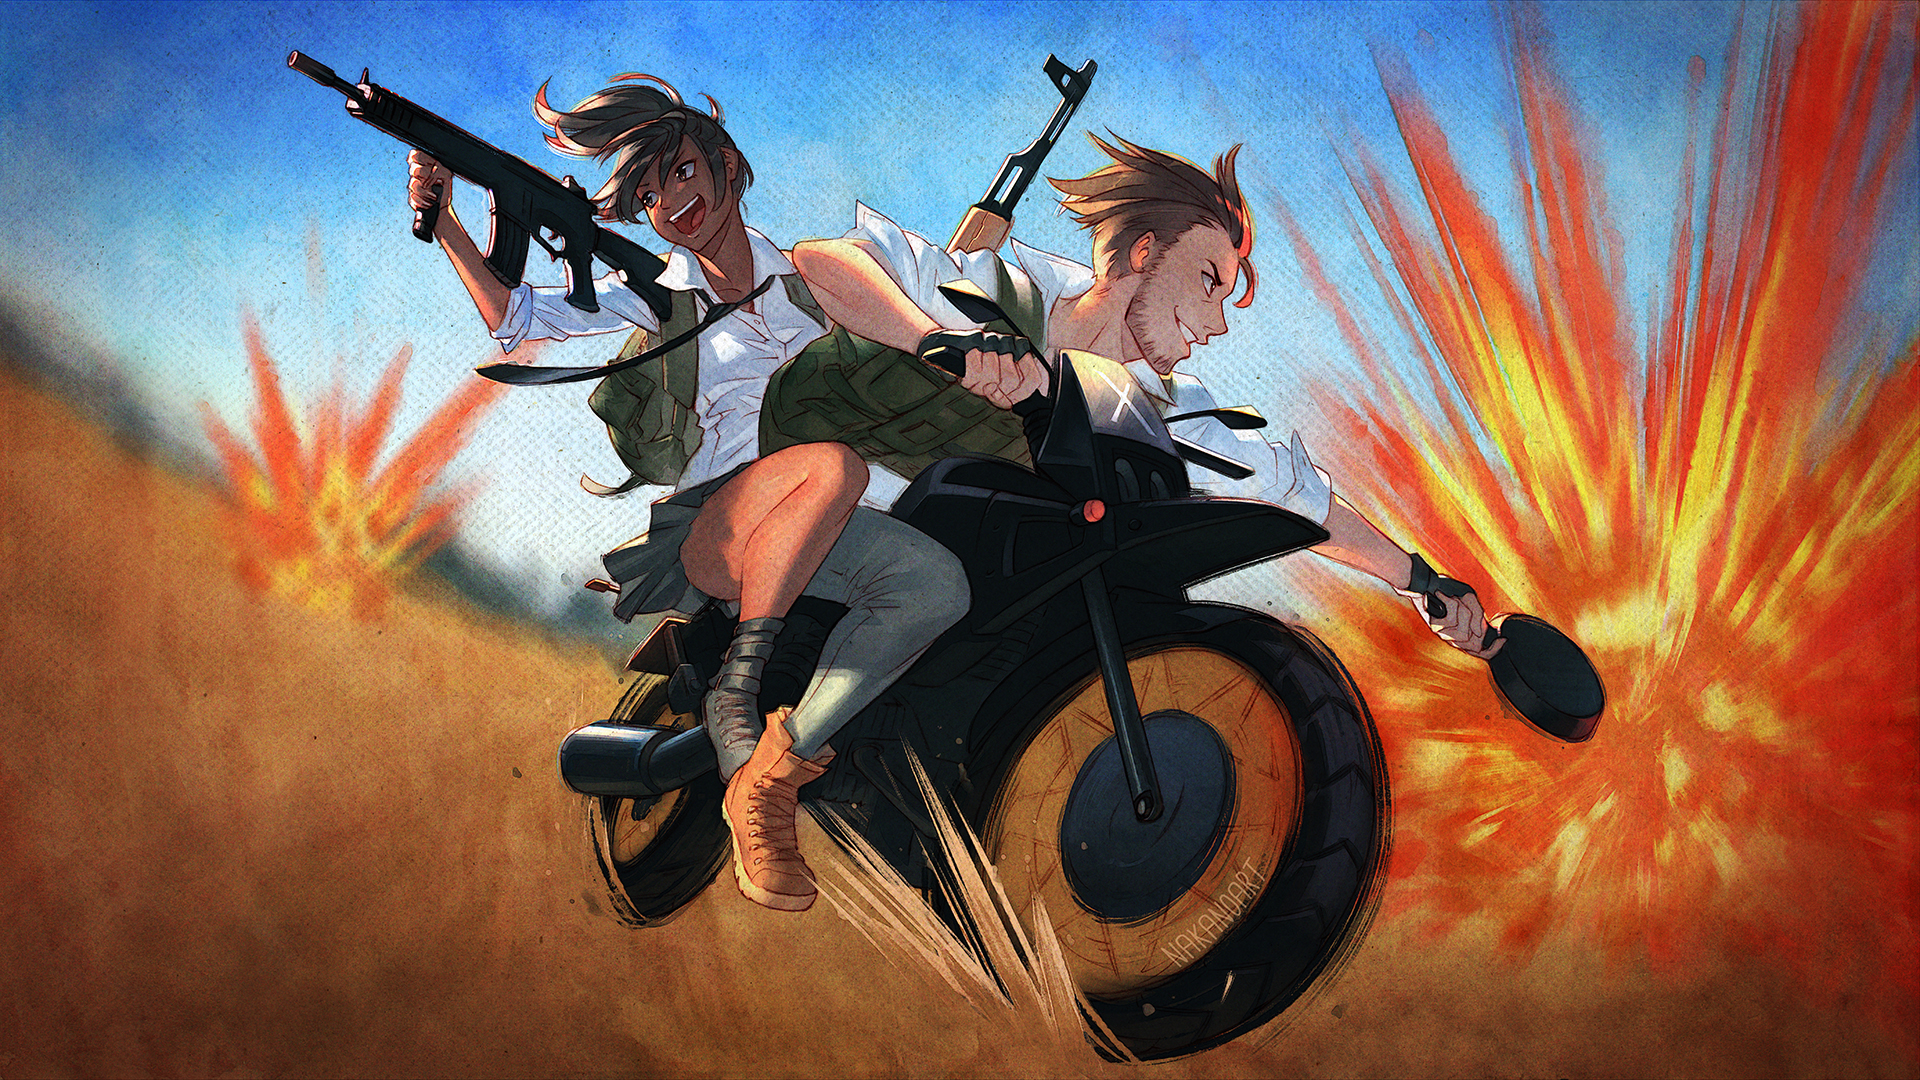 pubg wallpaper 1920x1080: 1680x1050 PlayerUnknowns Battlegrounds Artwork 1680x1050